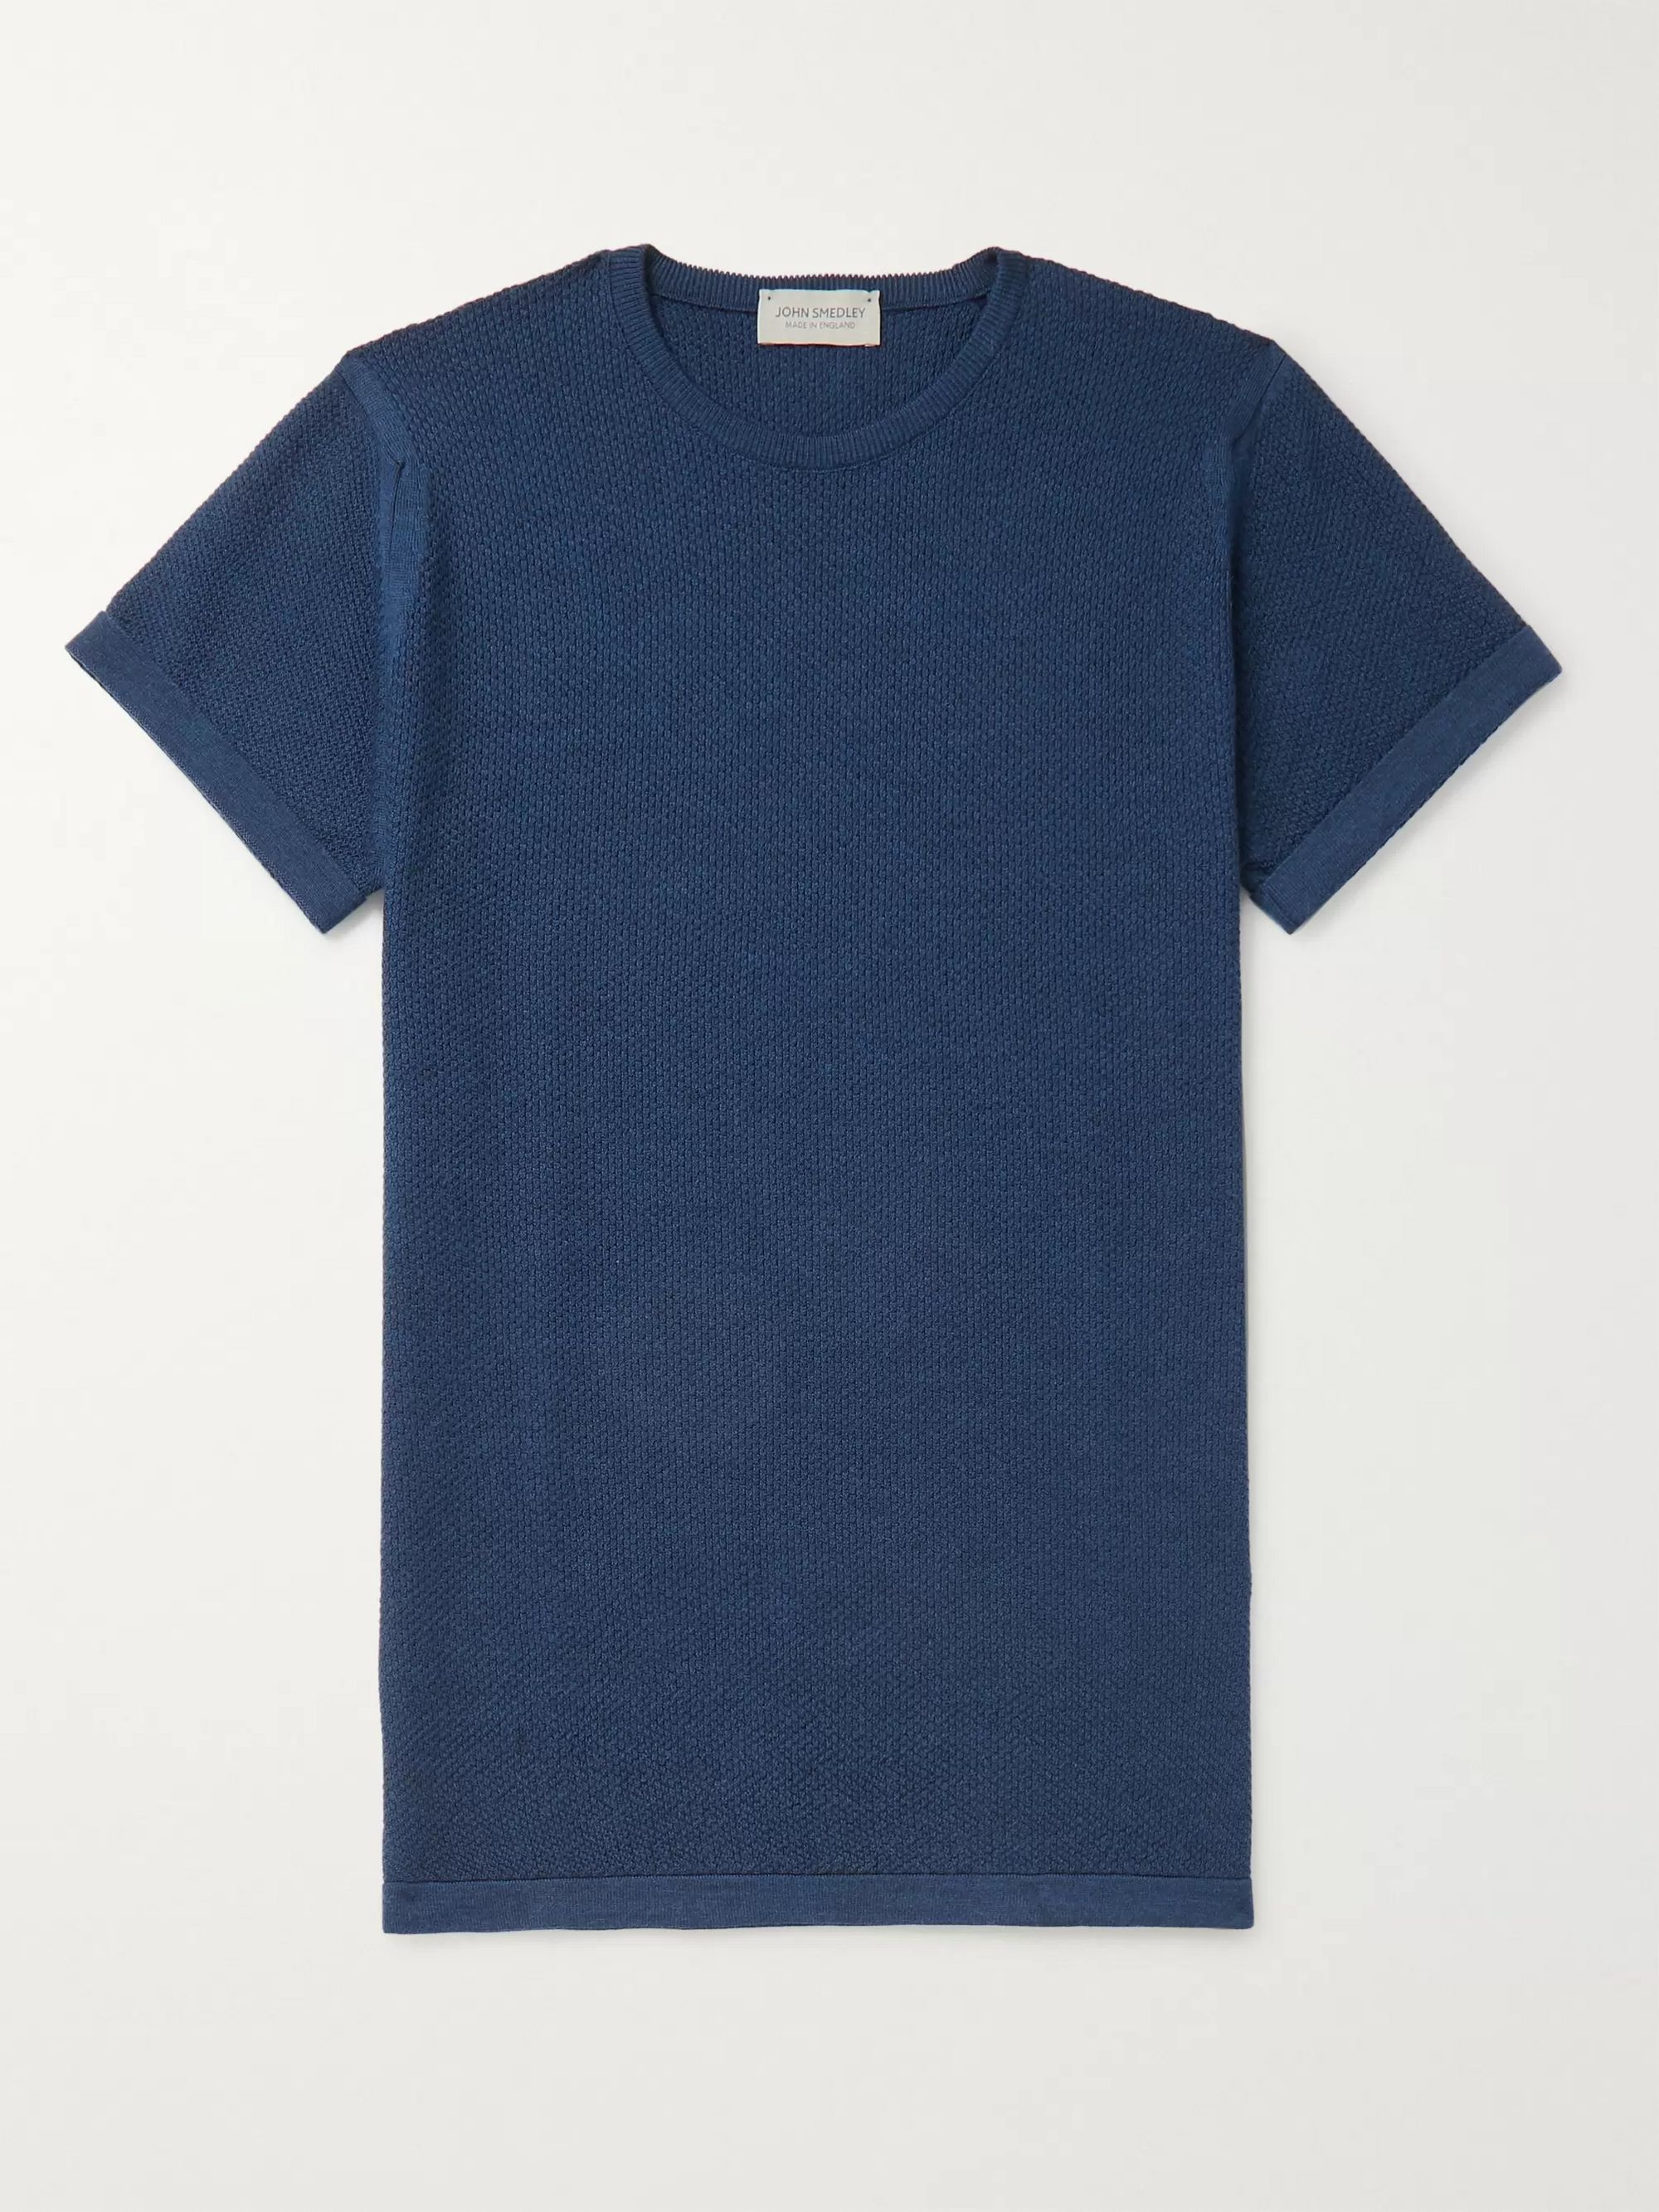 John Smedley 2 Singular Slim-Fit Honeycomb-Knit Virgin Wool T-Shirt